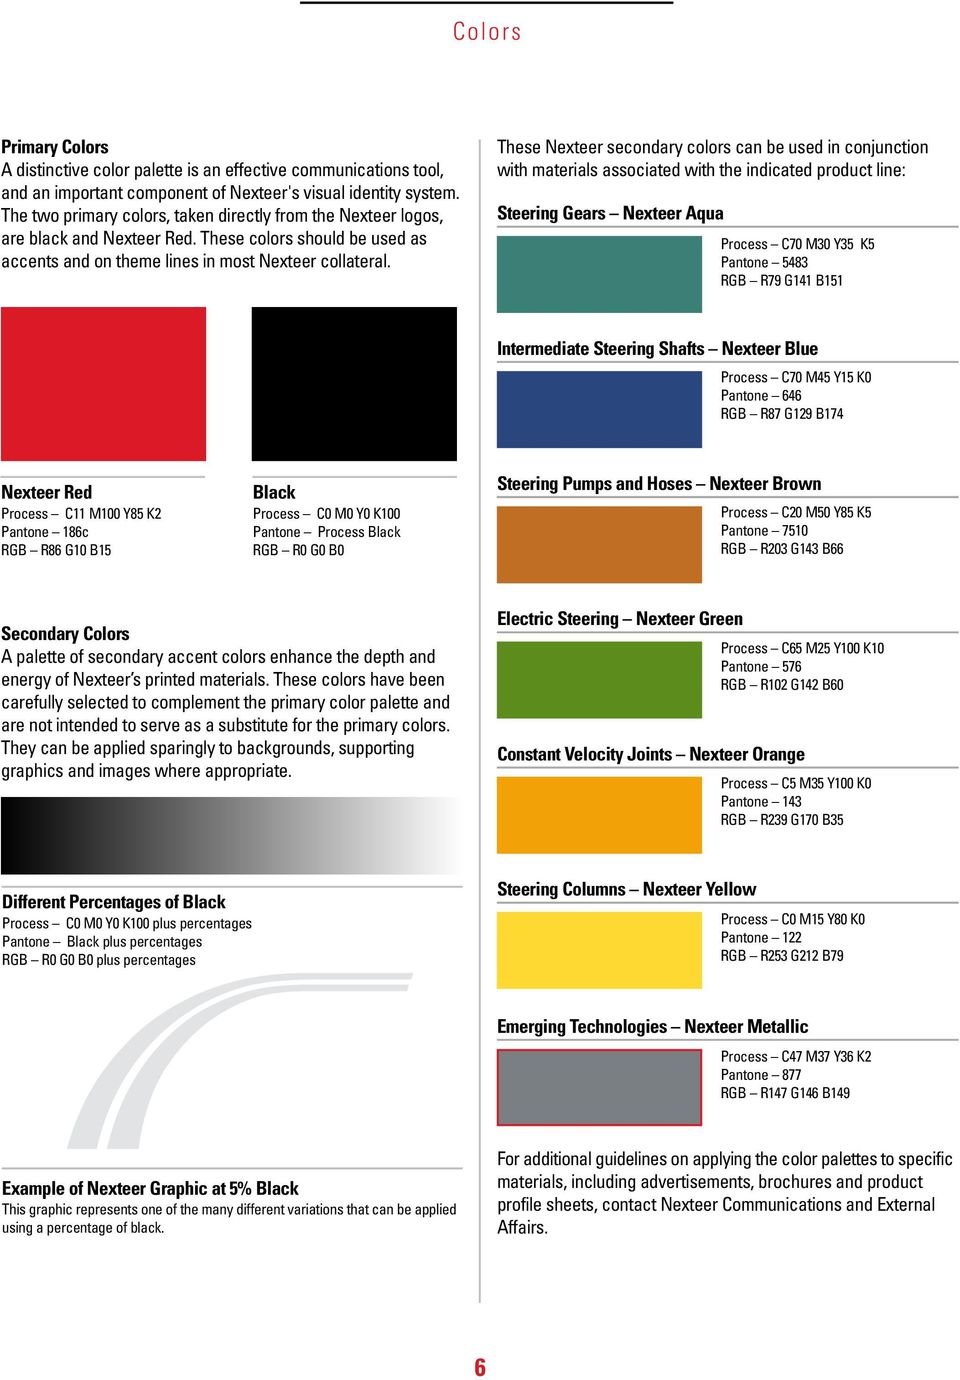 These Nexteer secondary colors can be used in conjunction with materials associated with the indicated product line: Steering Gears Nexteer Aqua Process C70 M30 Y35 K5 Pantone 5483 RGB R79 G141 B151